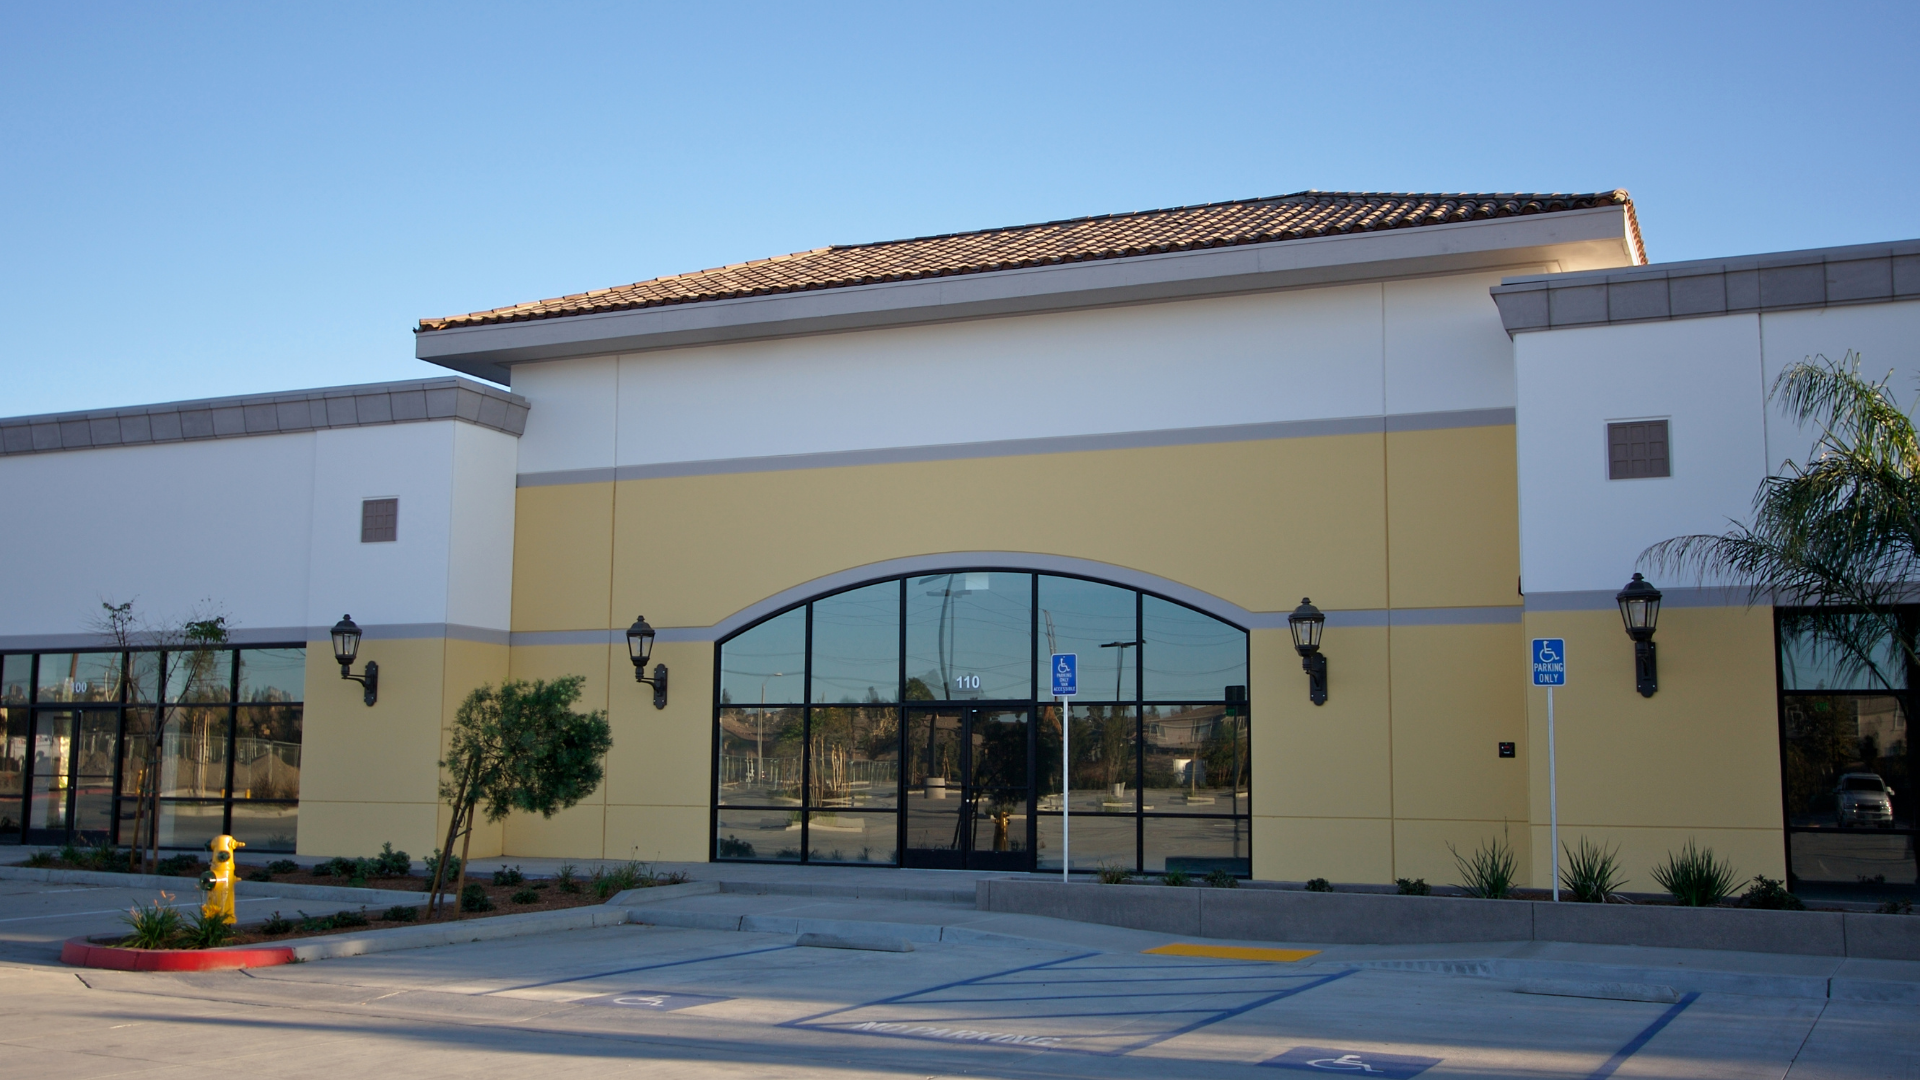 The Close Relationship Between Retail Real Estate with CNBCs Courtney Reagan | Ken McElroy Image